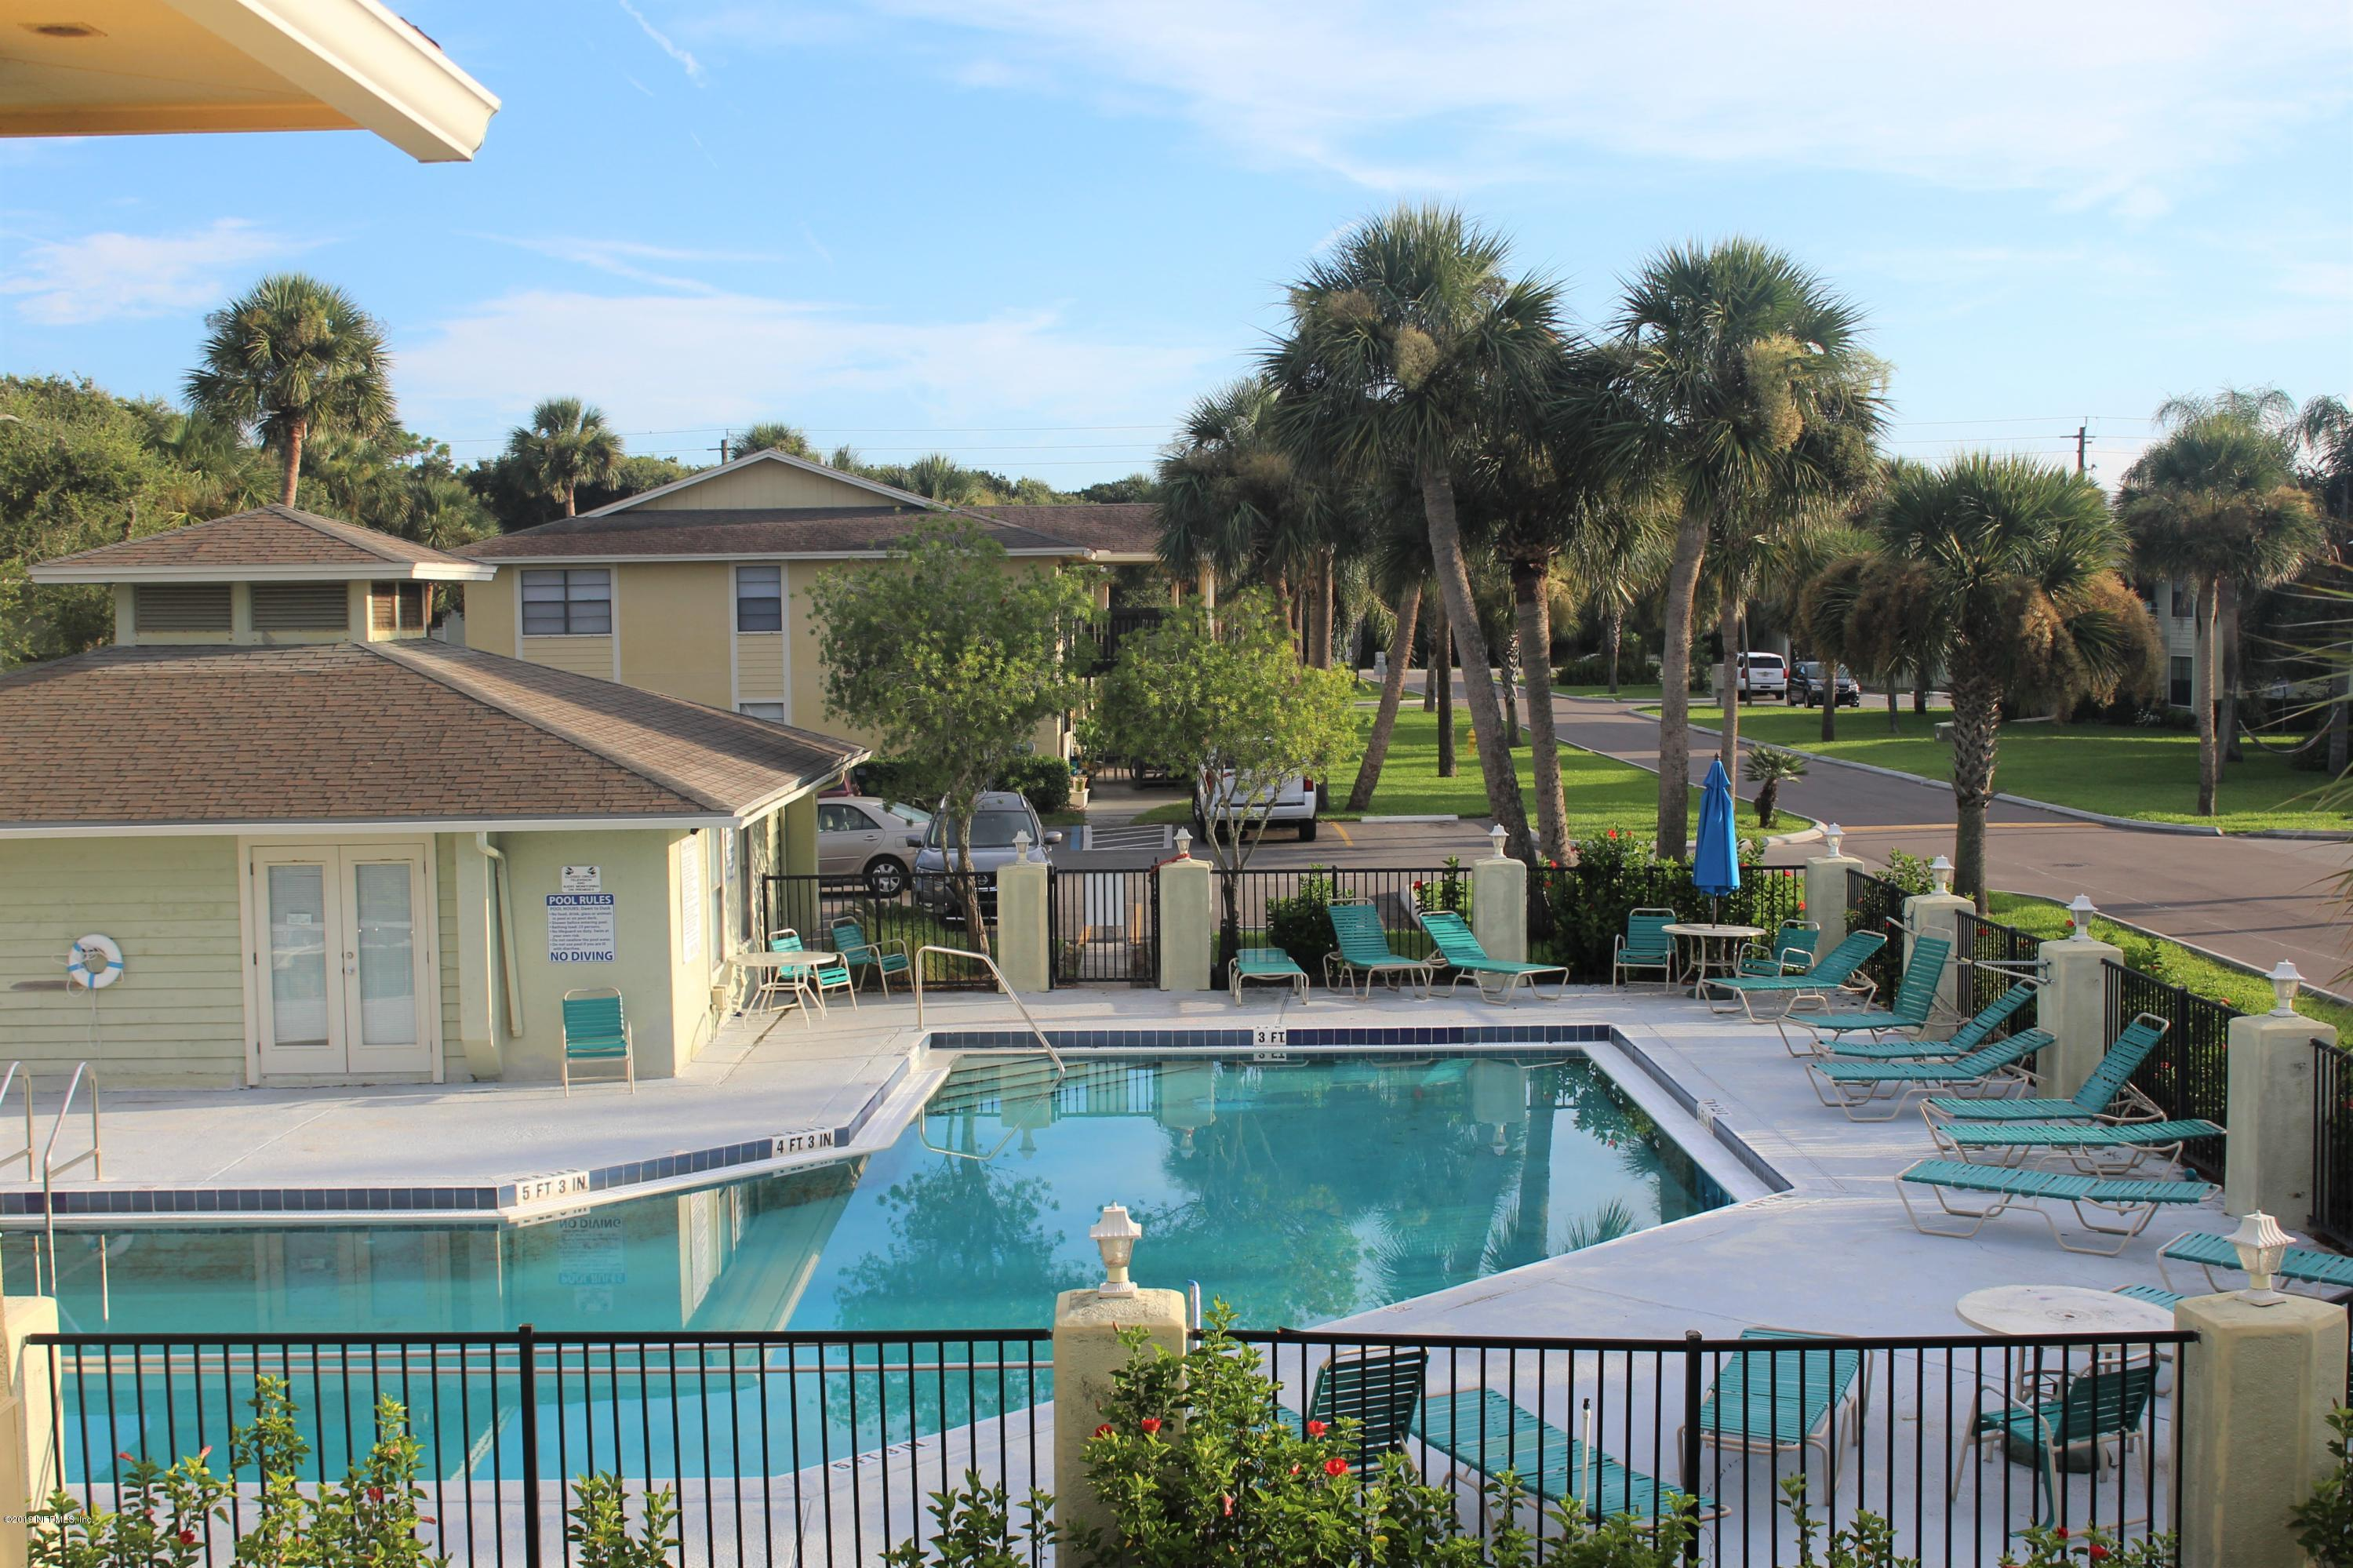 34 CLIPPER, ST AUGUSTINE BEACH, FLORIDA 32080, 2 Bedrooms Bedrooms, ,2 BathroomsBathrooms,Condo,For sale,CLIPPER,994345